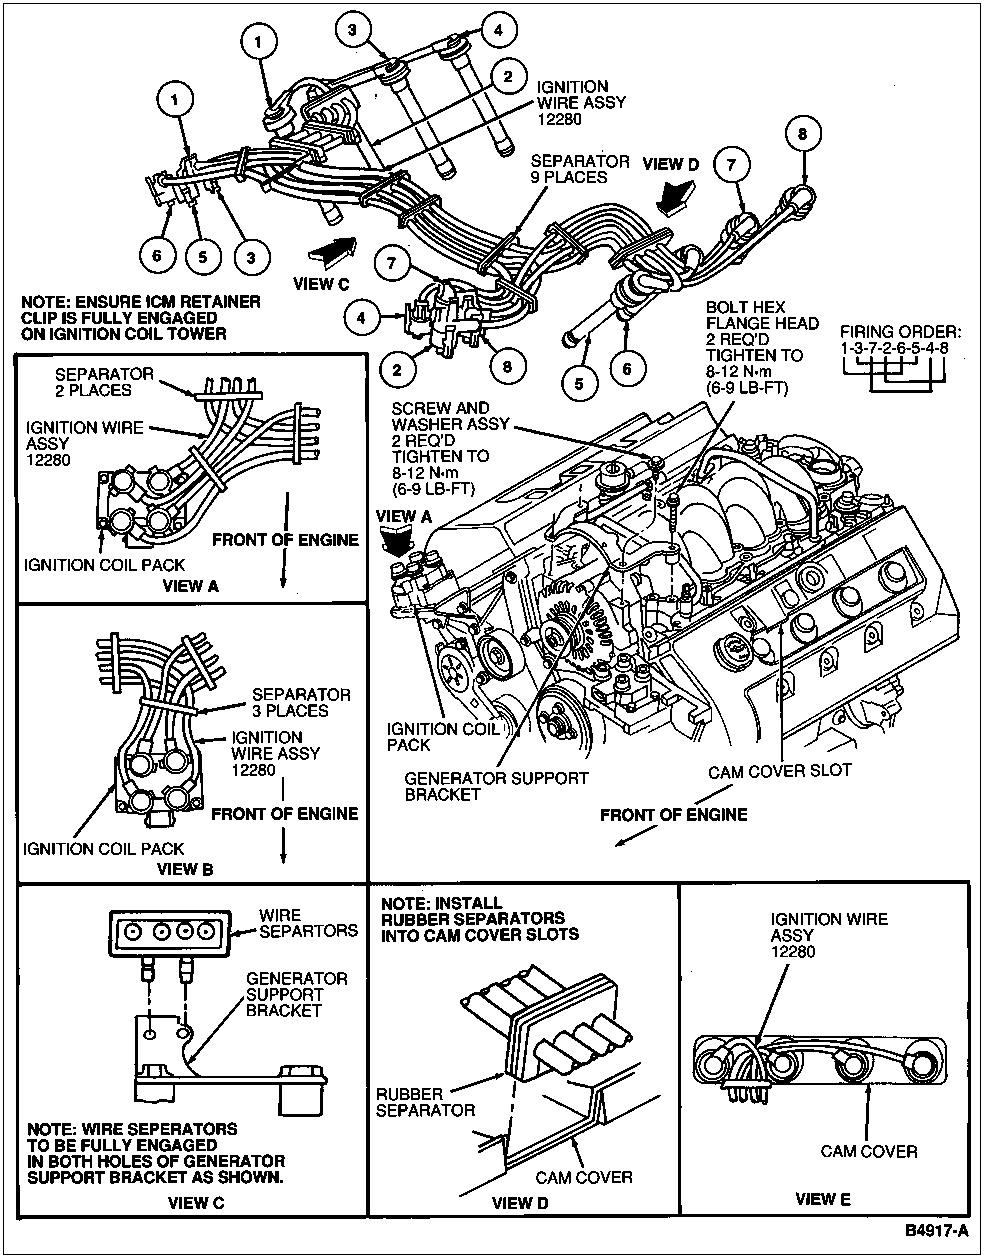 plugwires firing order? 2007 lincoln navigator radio wiring diagram at alyssarenee.co